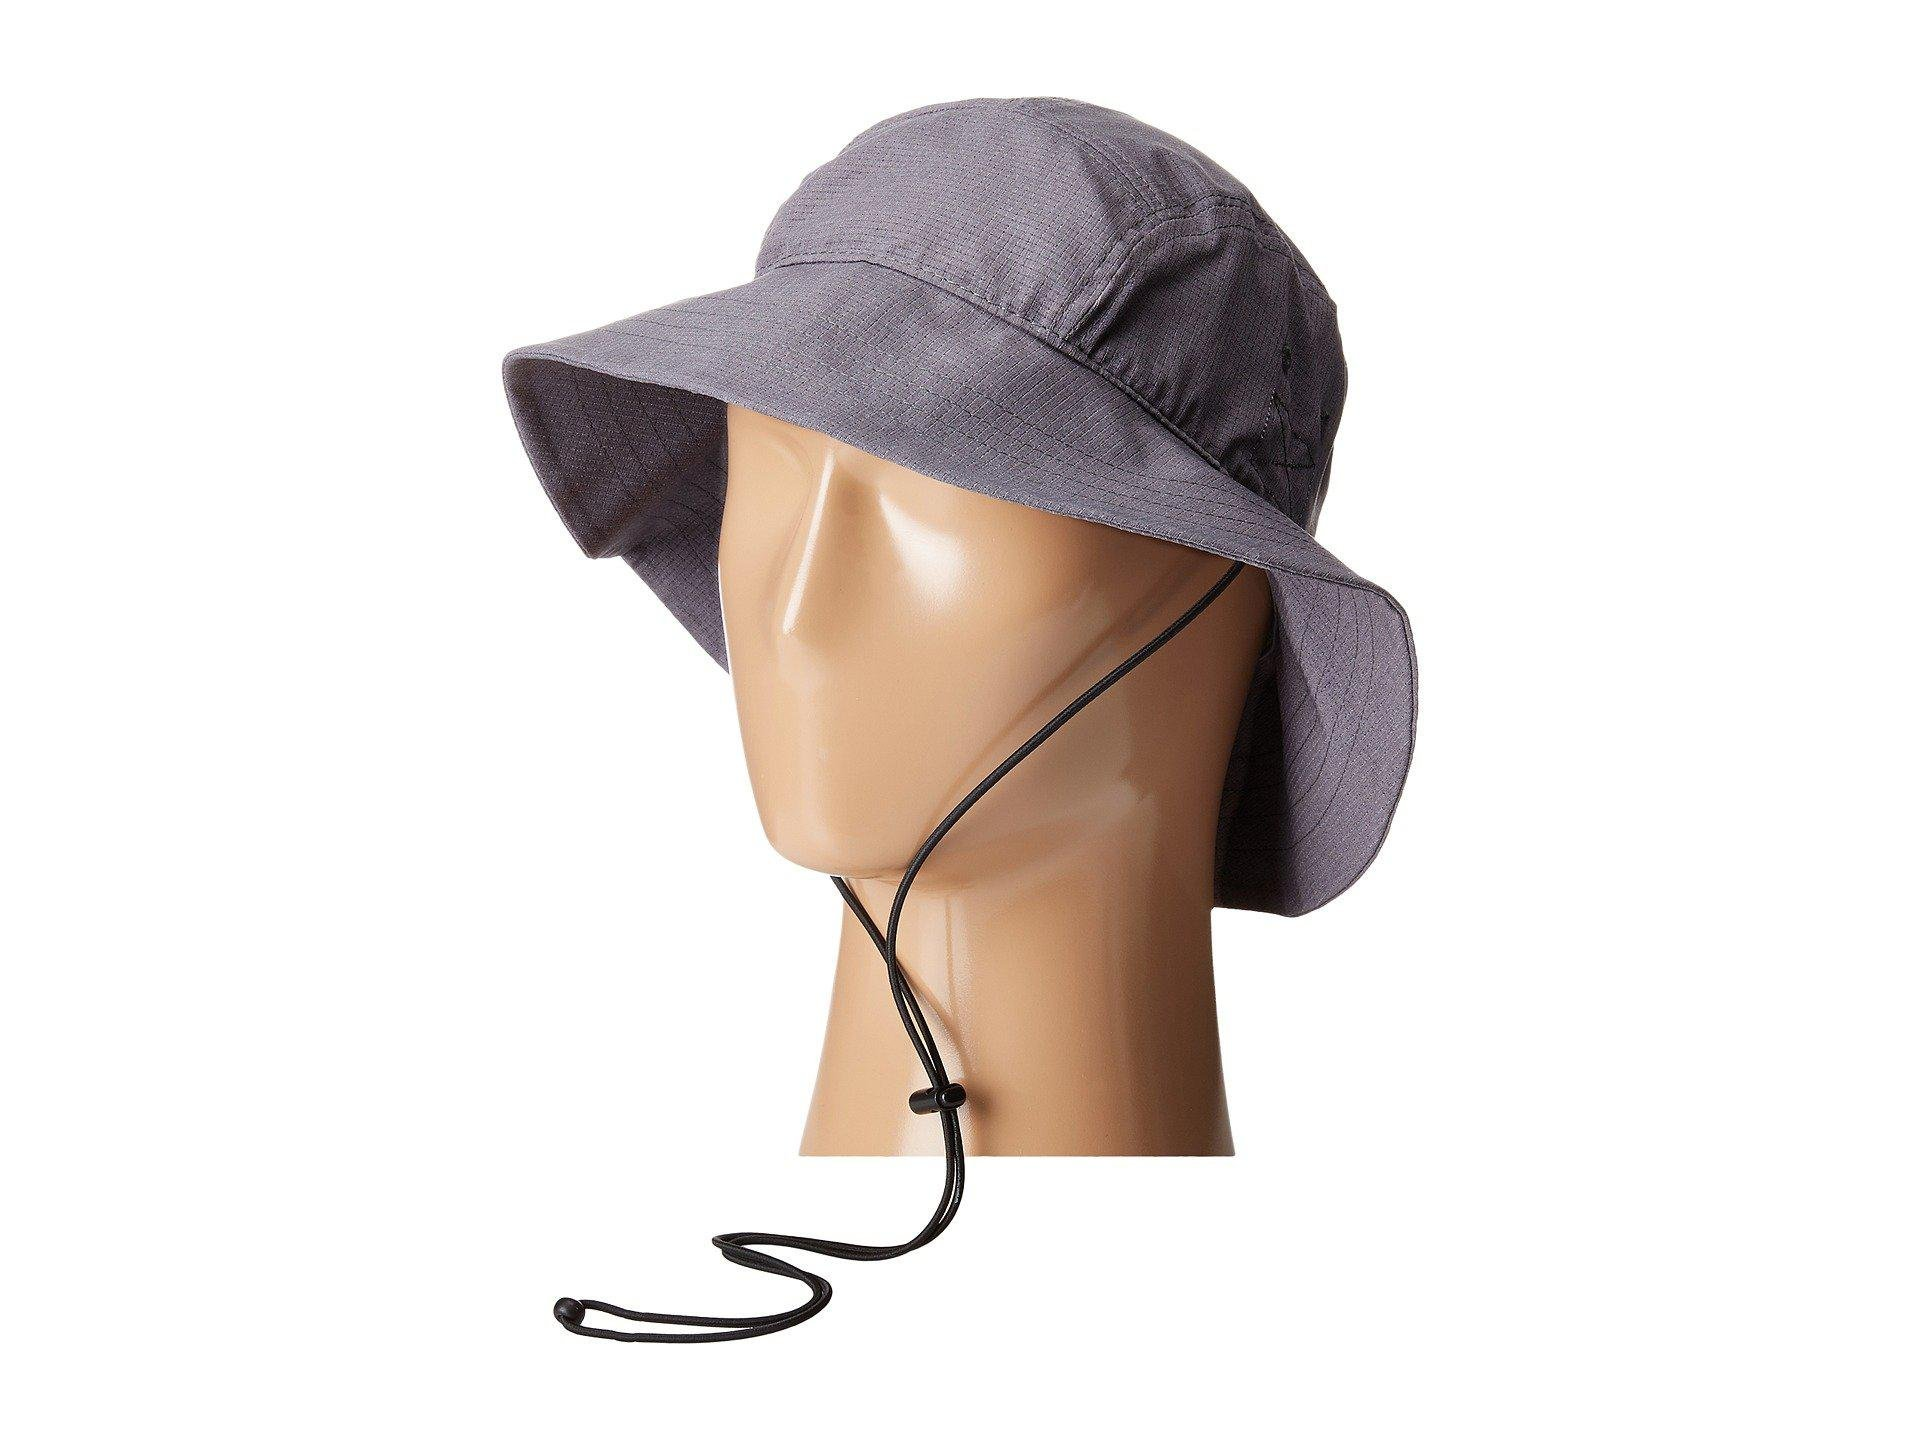 471a805c553 Gallery. Previously sold at  Zappos · Women s Sun Hats ...